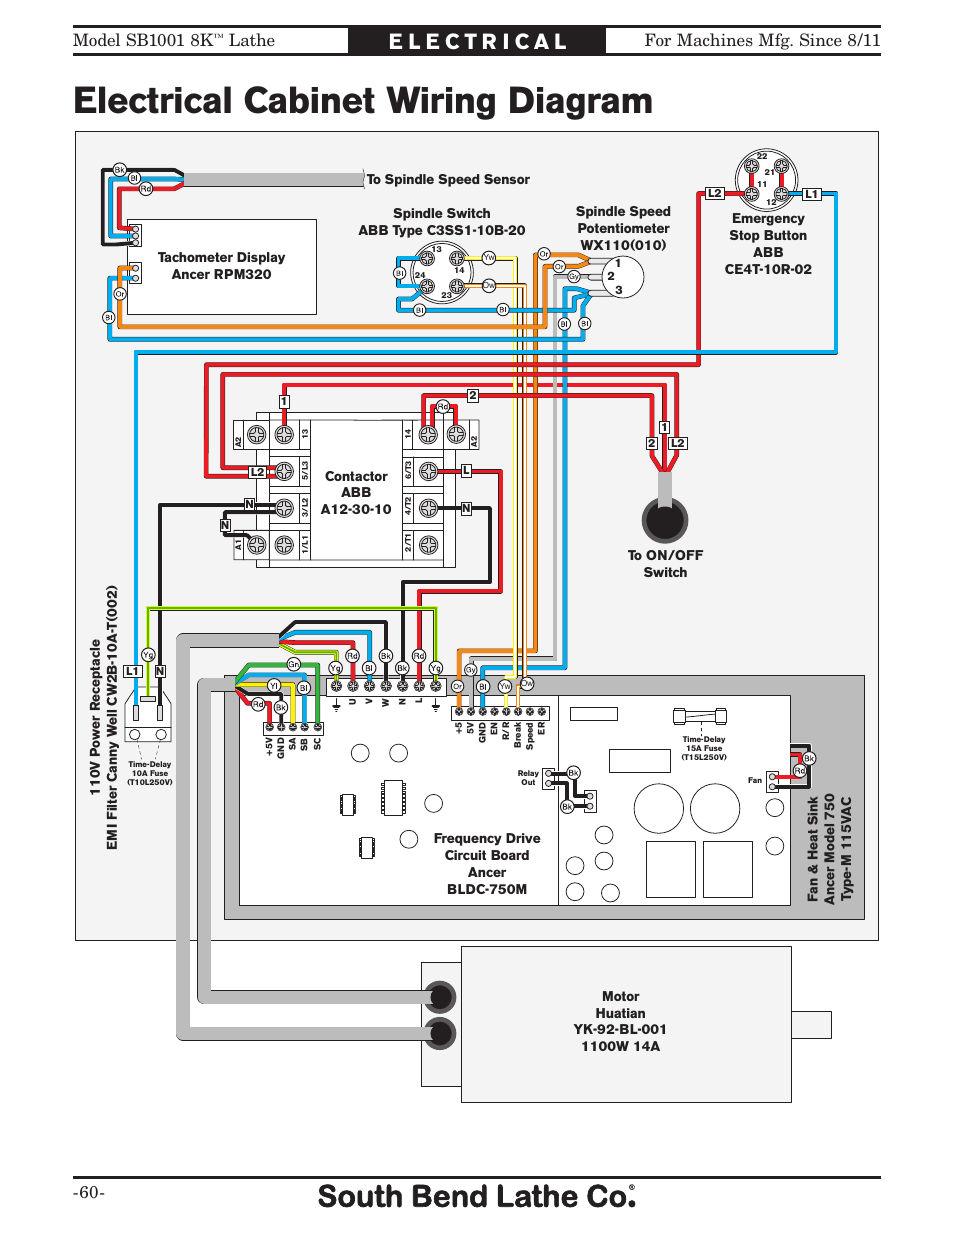 electrical cabinet wiring diagram, lathe | southbend ... south bend lathe wiring diagram #2